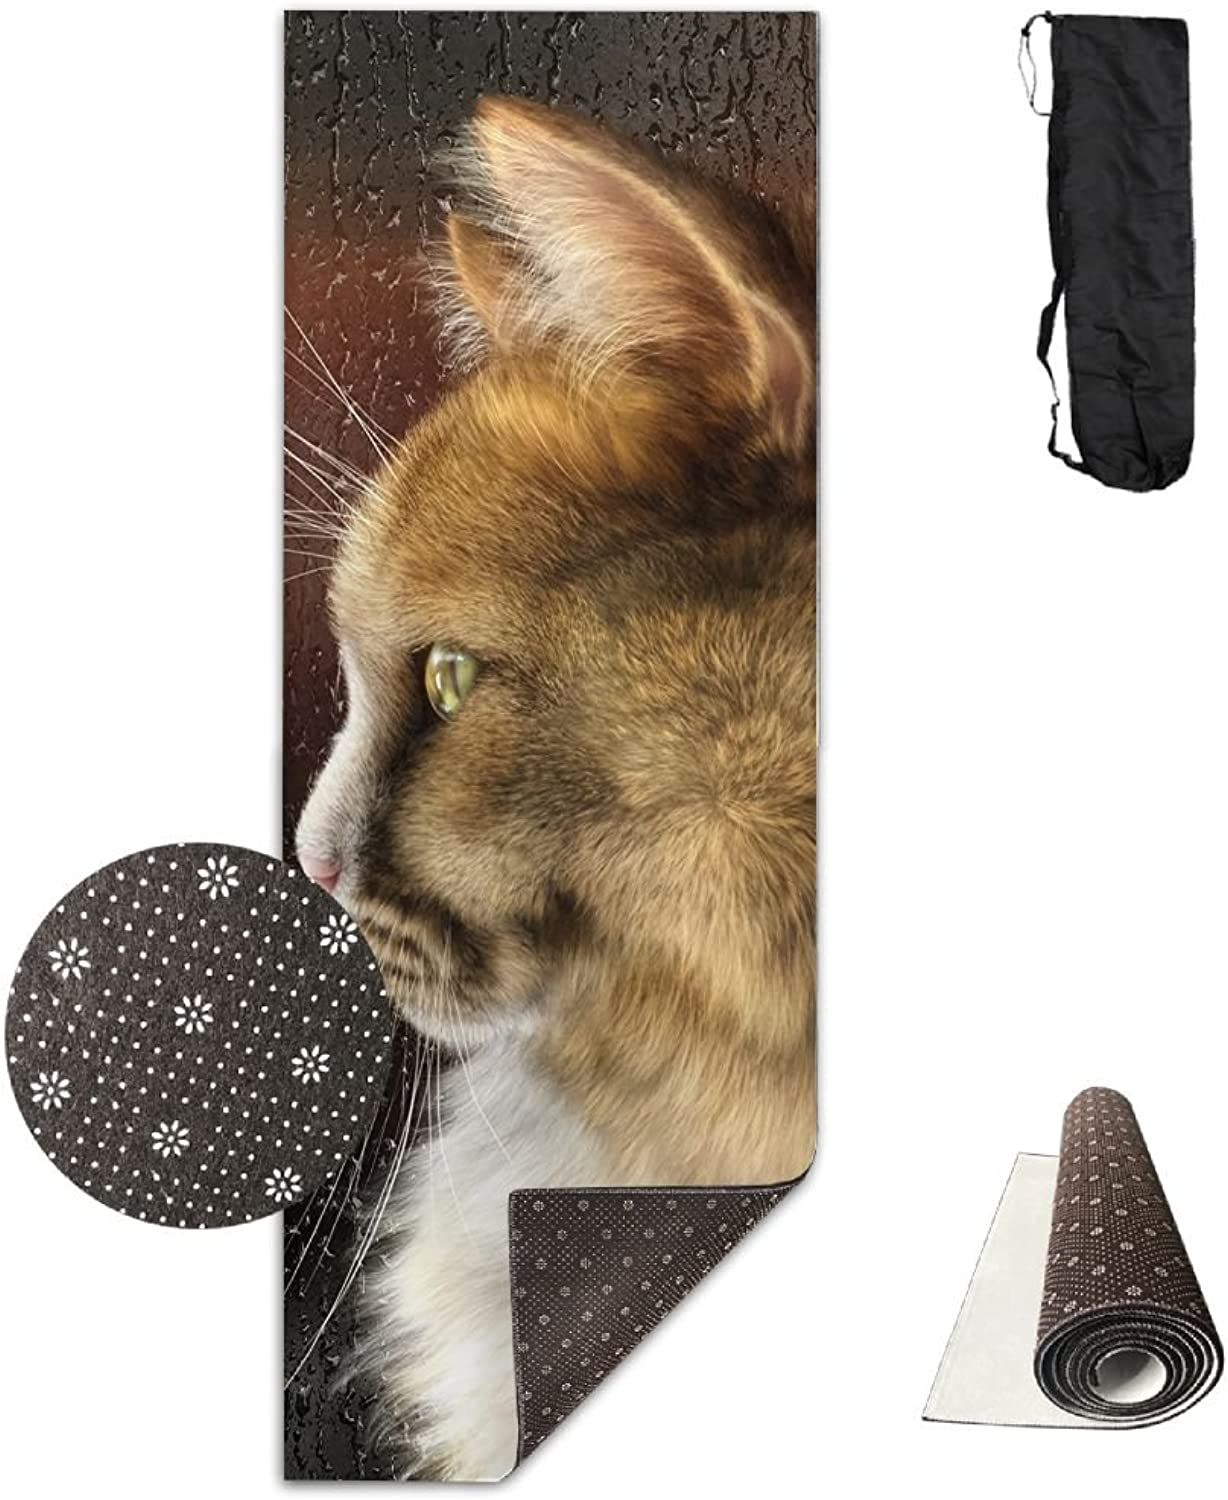 Non Slip Yoga Mat Cats Look Window Premium Printed 24 X 71 Inches Great For Exercise Pilates Gymnastics Carrying Strap